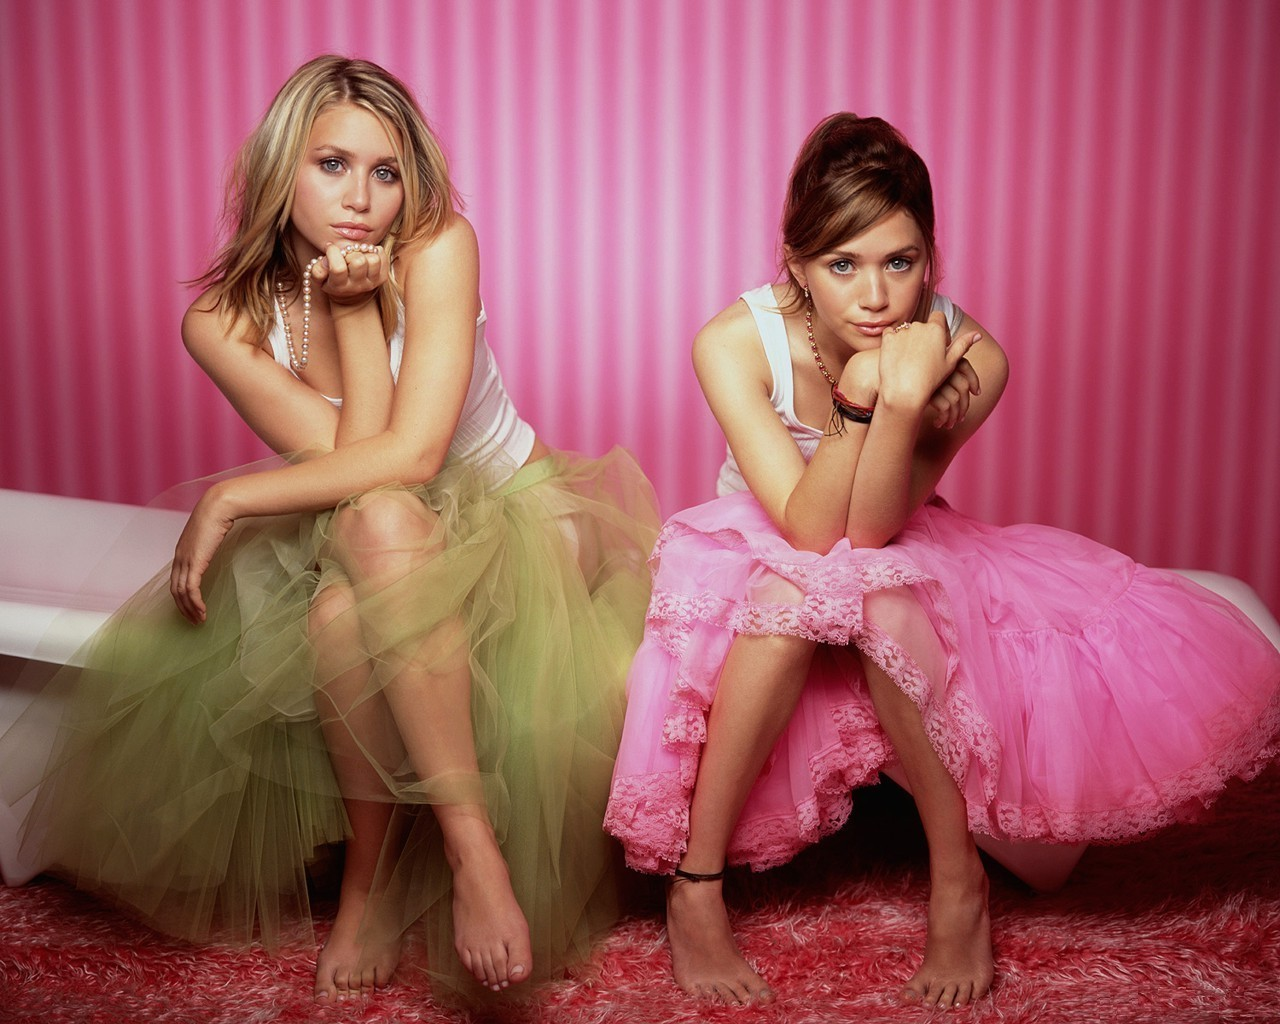 http://2.bp.blogspot.com/-dROIaEsFOPs/To8k-3fkSbI/AAAAAAAABLQ/YJW2SPnsV5U/s1600/SISTERS-4-LIFE-mary-kate-and-ashley-olsen-1819460-1280-1024.jpg